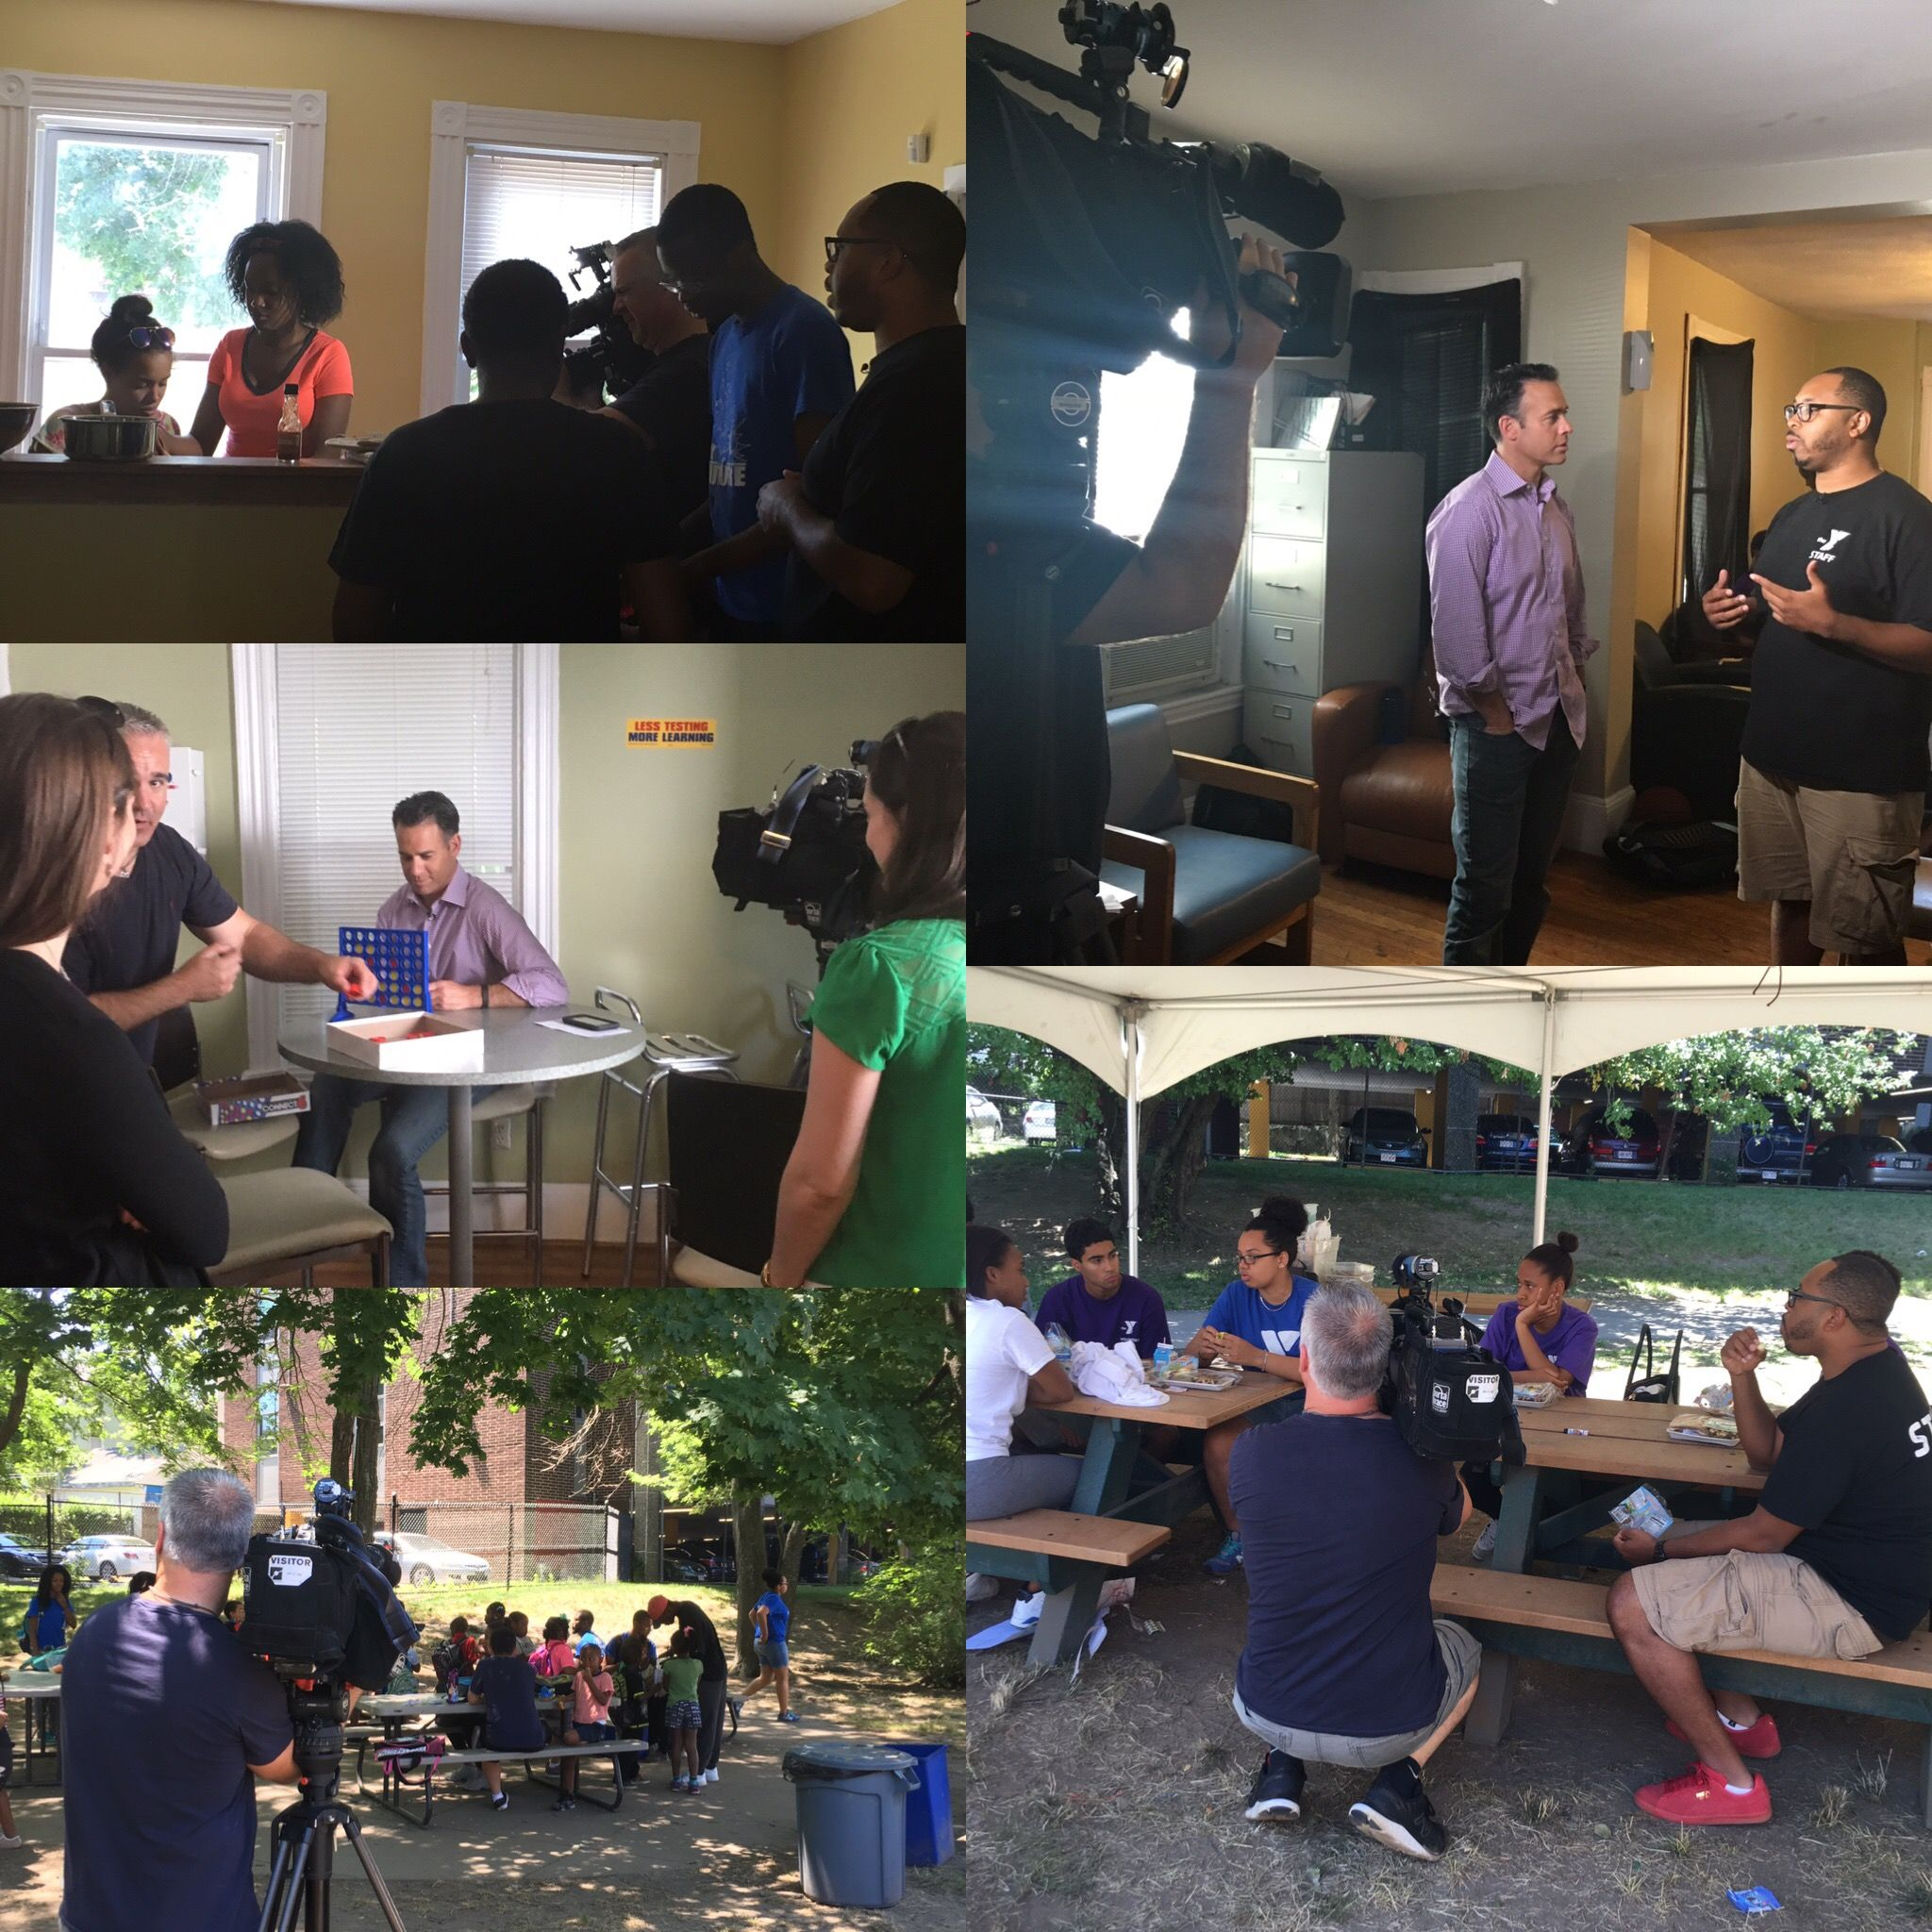 We Spent The Day With Necn At The Ymca Of Greater Boston S Dorchester Branch For A Filming Out The Organization S Get Summe With Images Summer Program Ymca Media Relations